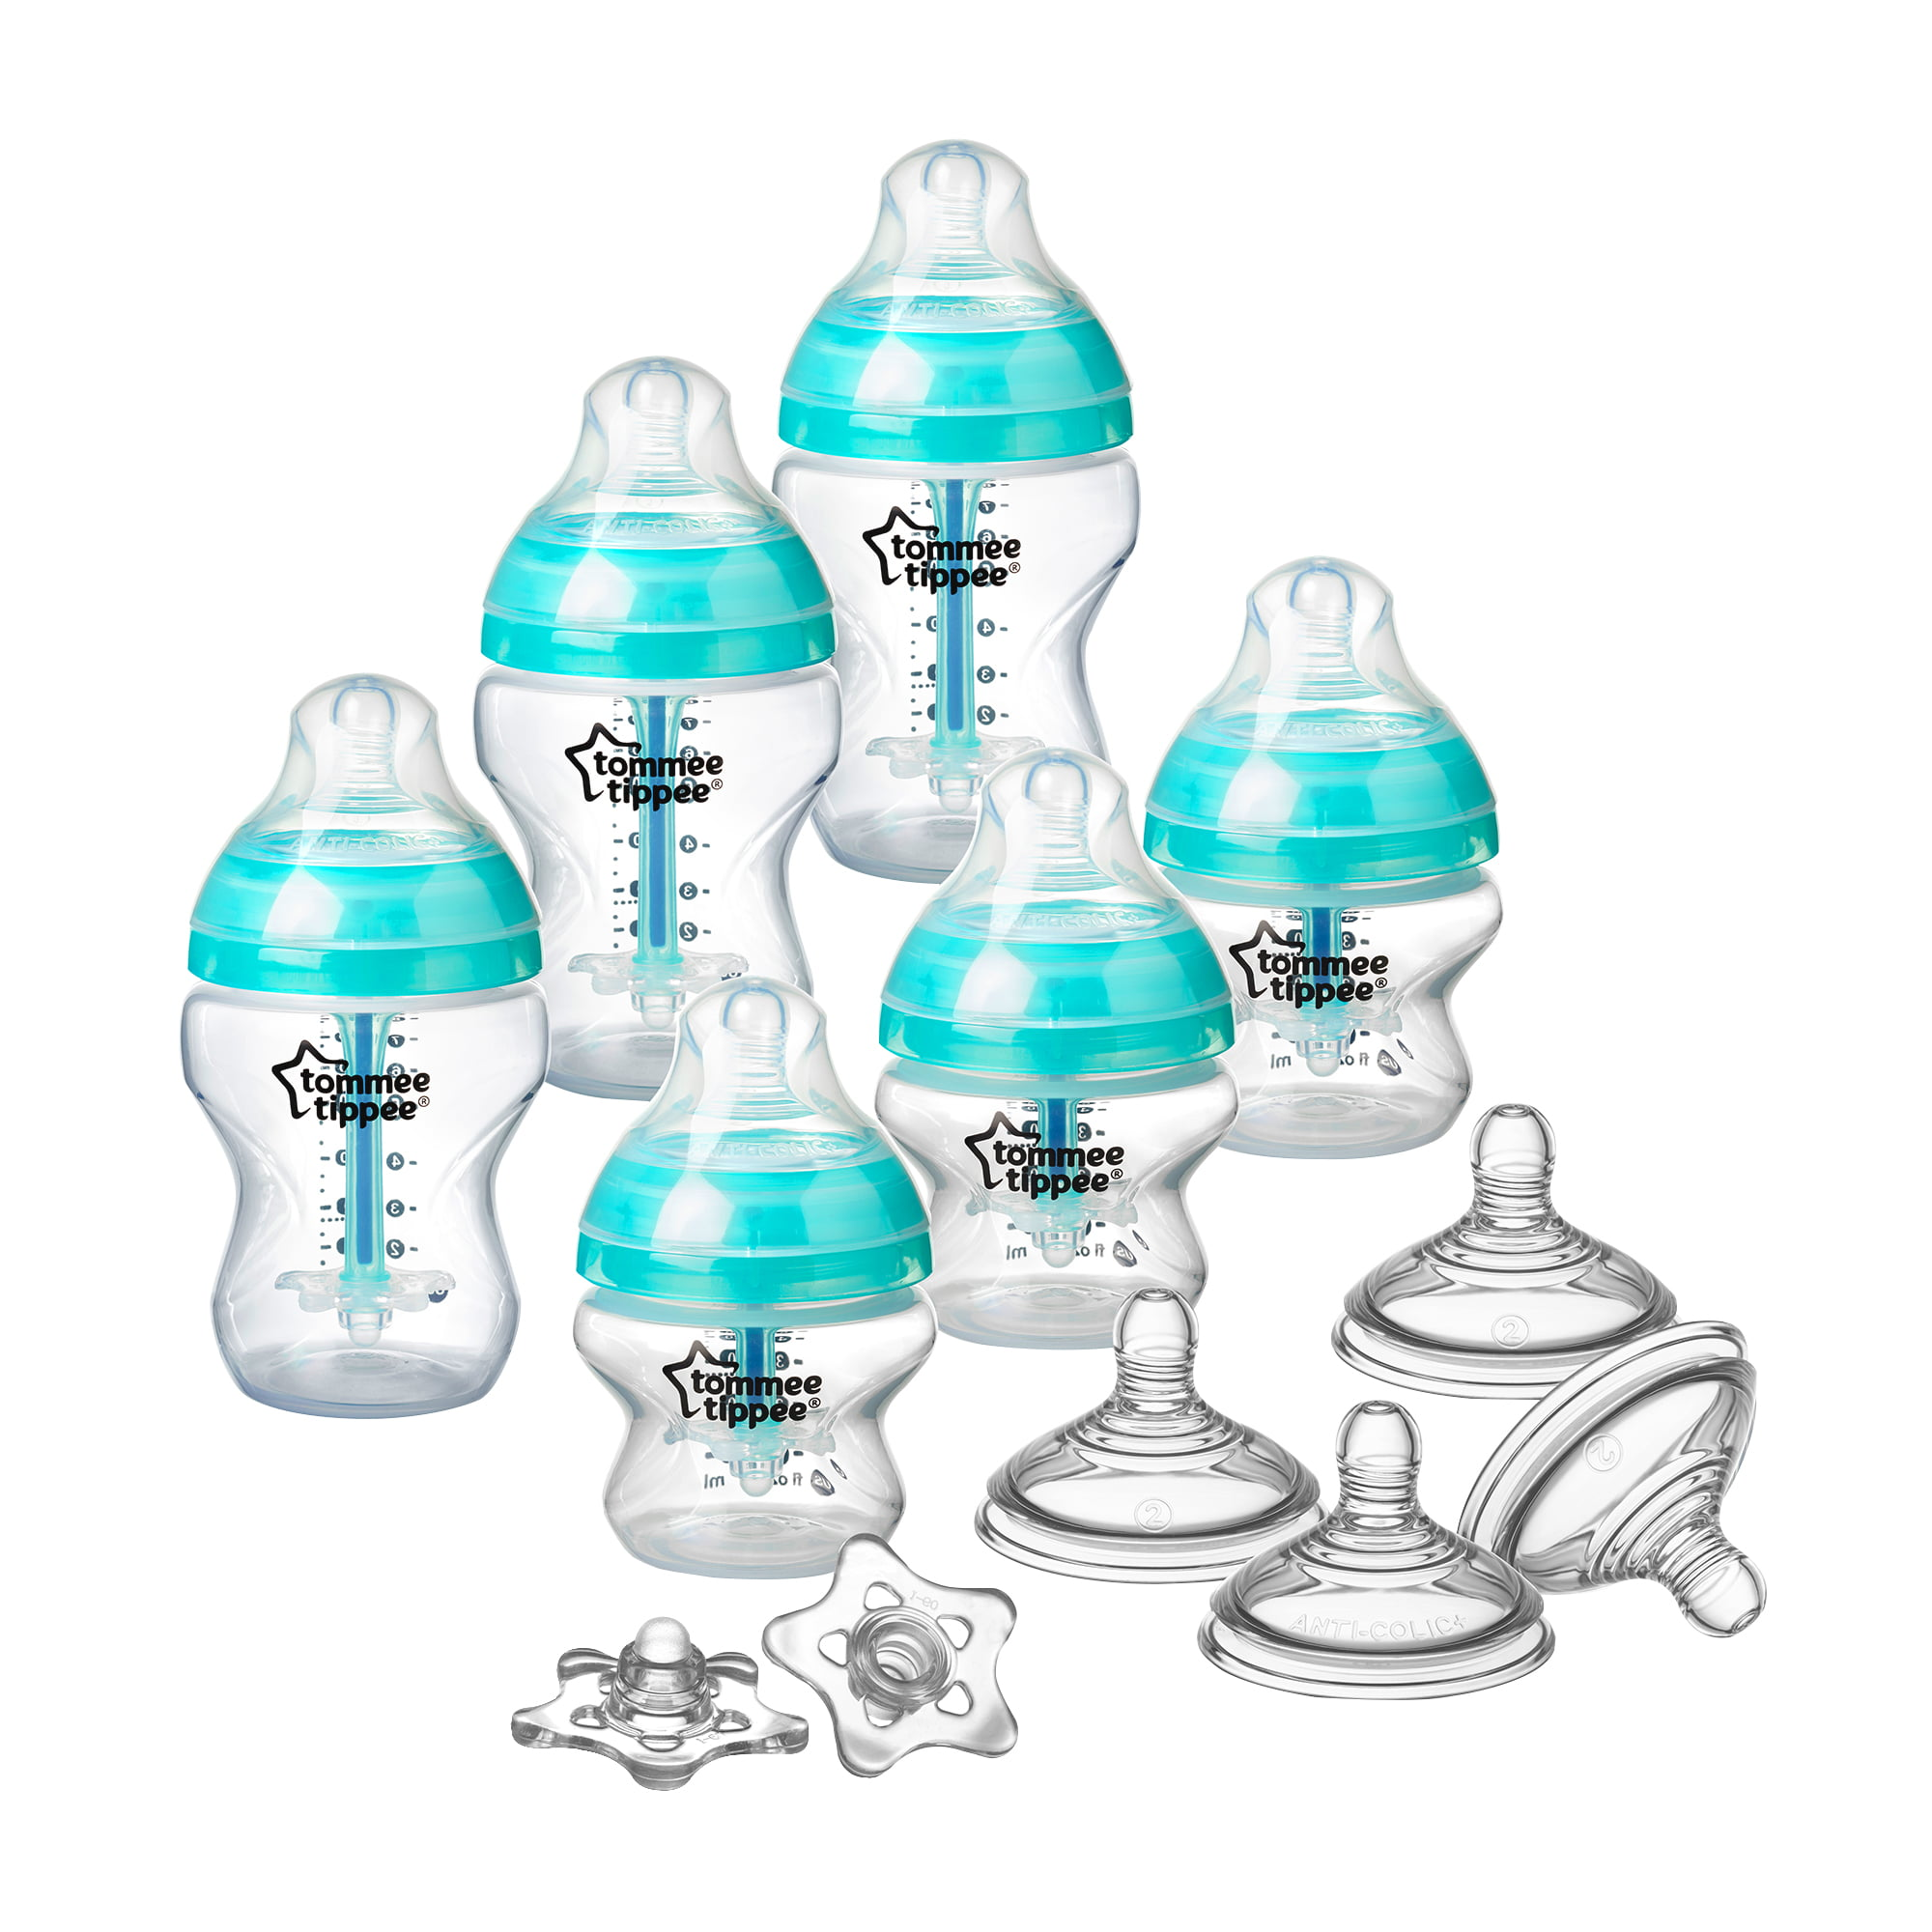 Tommee Tippee Advanced Anti-Colic Newborn Baby Bottle Set by Tommee Tippee